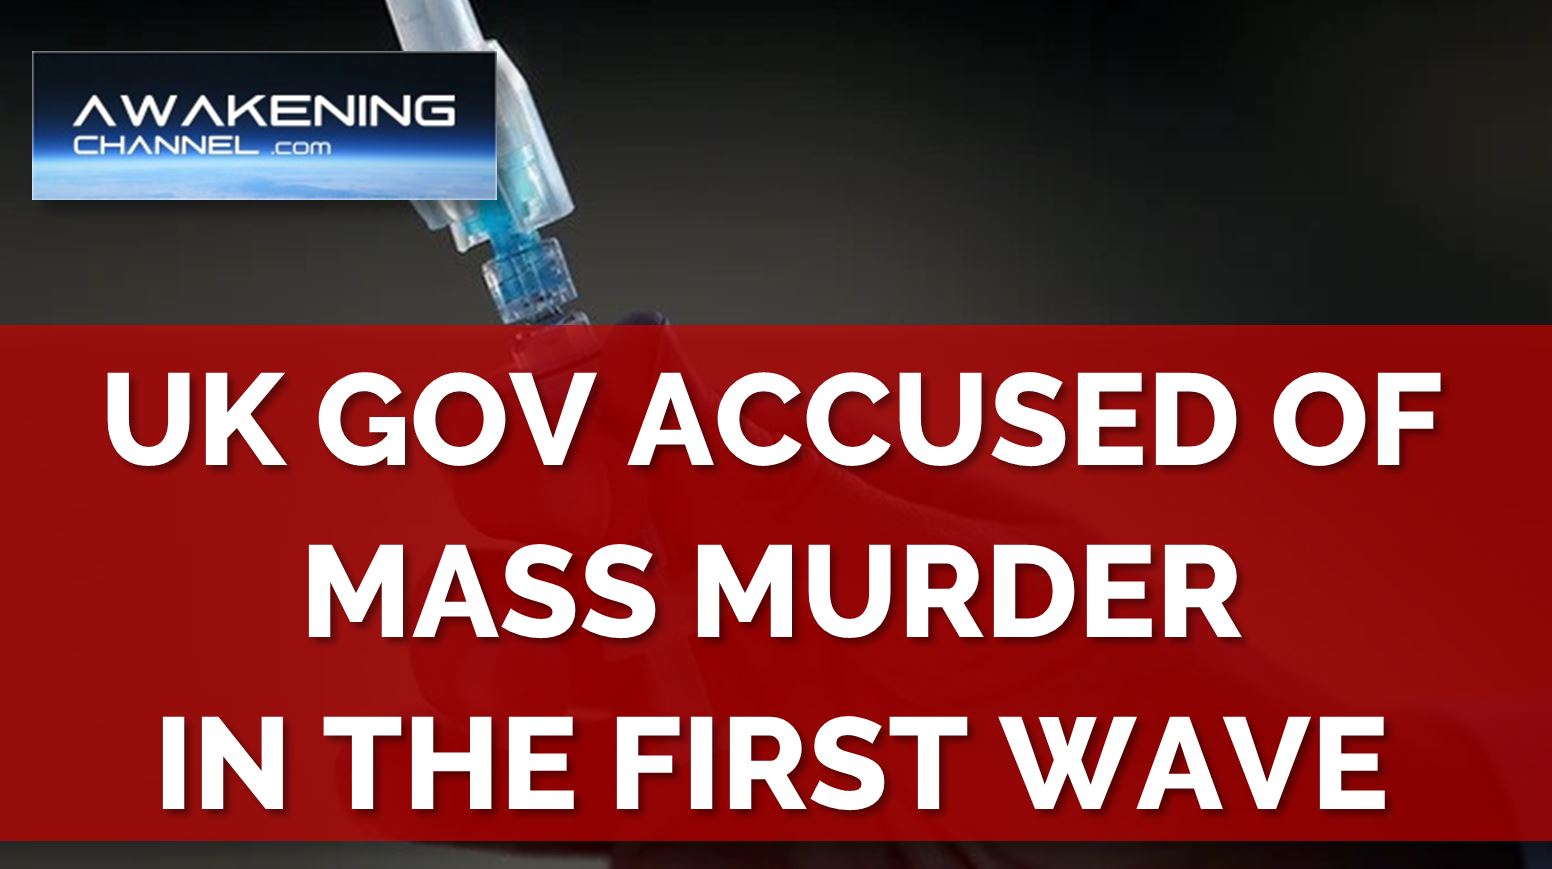 CV19 or Midazolam? UK Gov Accused of Intentionally Murdering People Who Supposedly Died of cv19